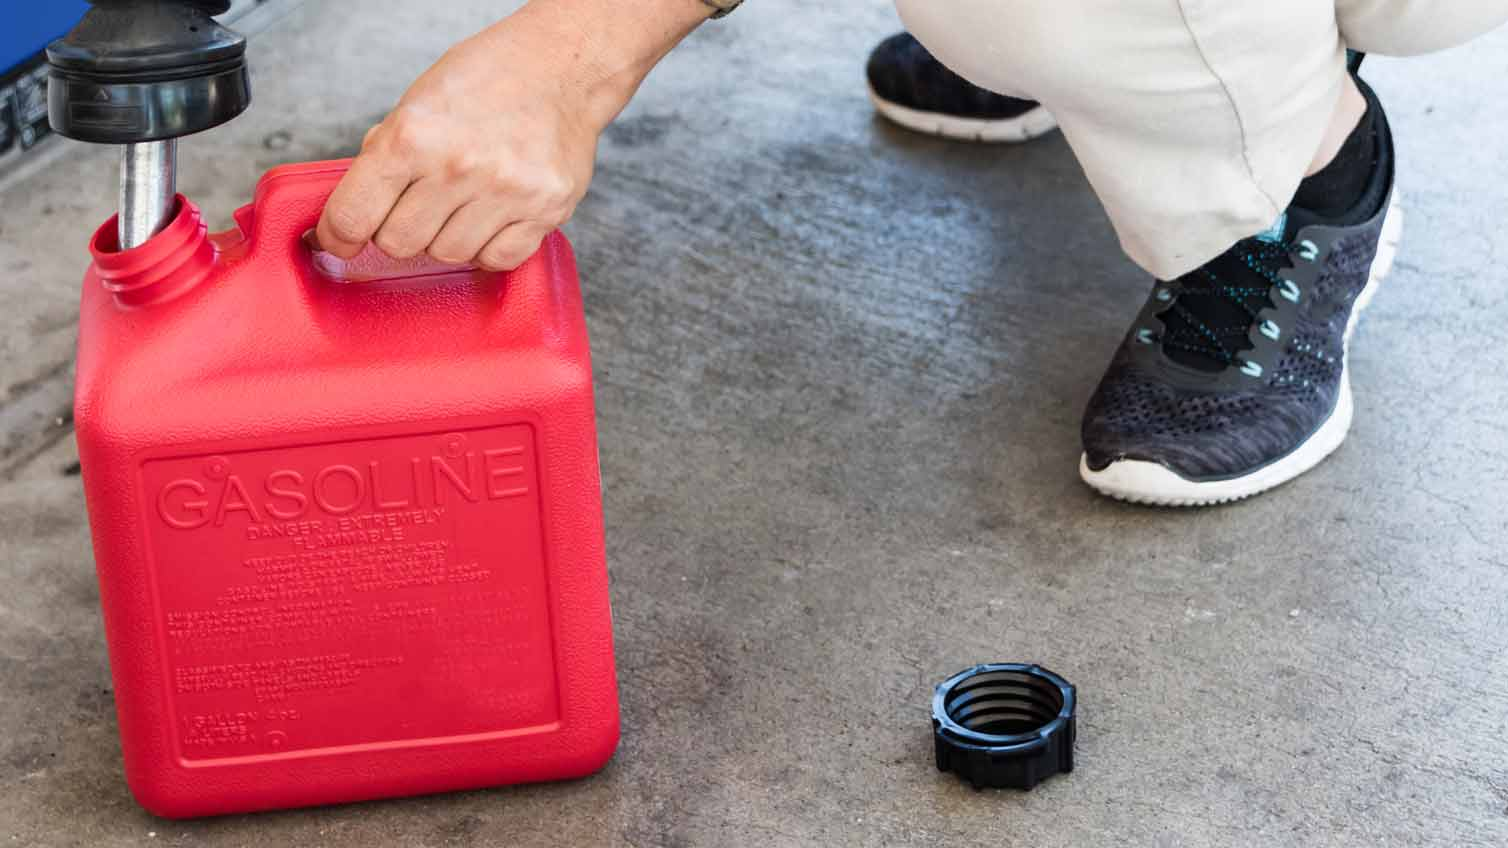 Person filling up a gas can on the ground.